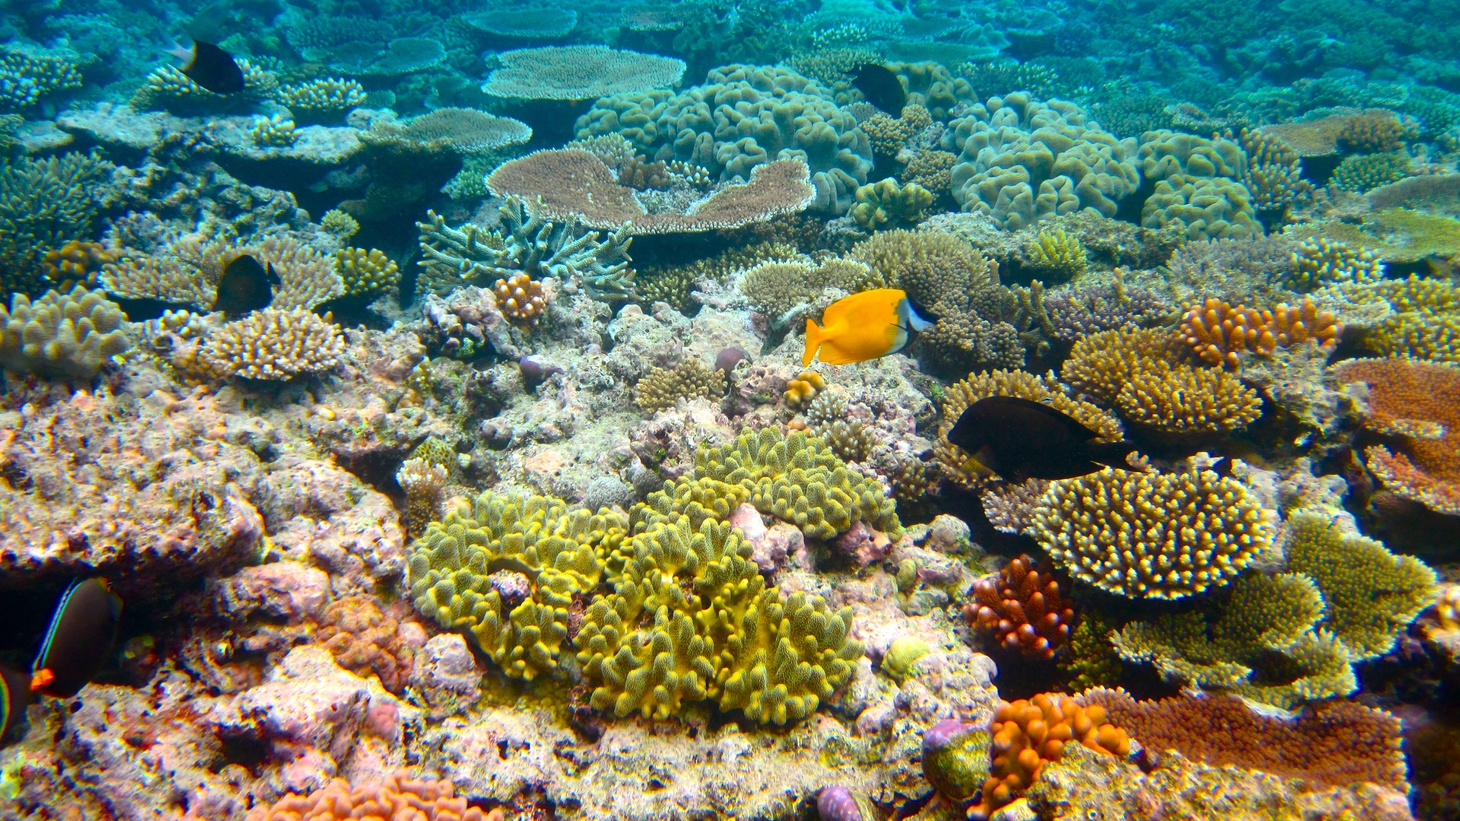 The Great Barrier Reef, 2010.